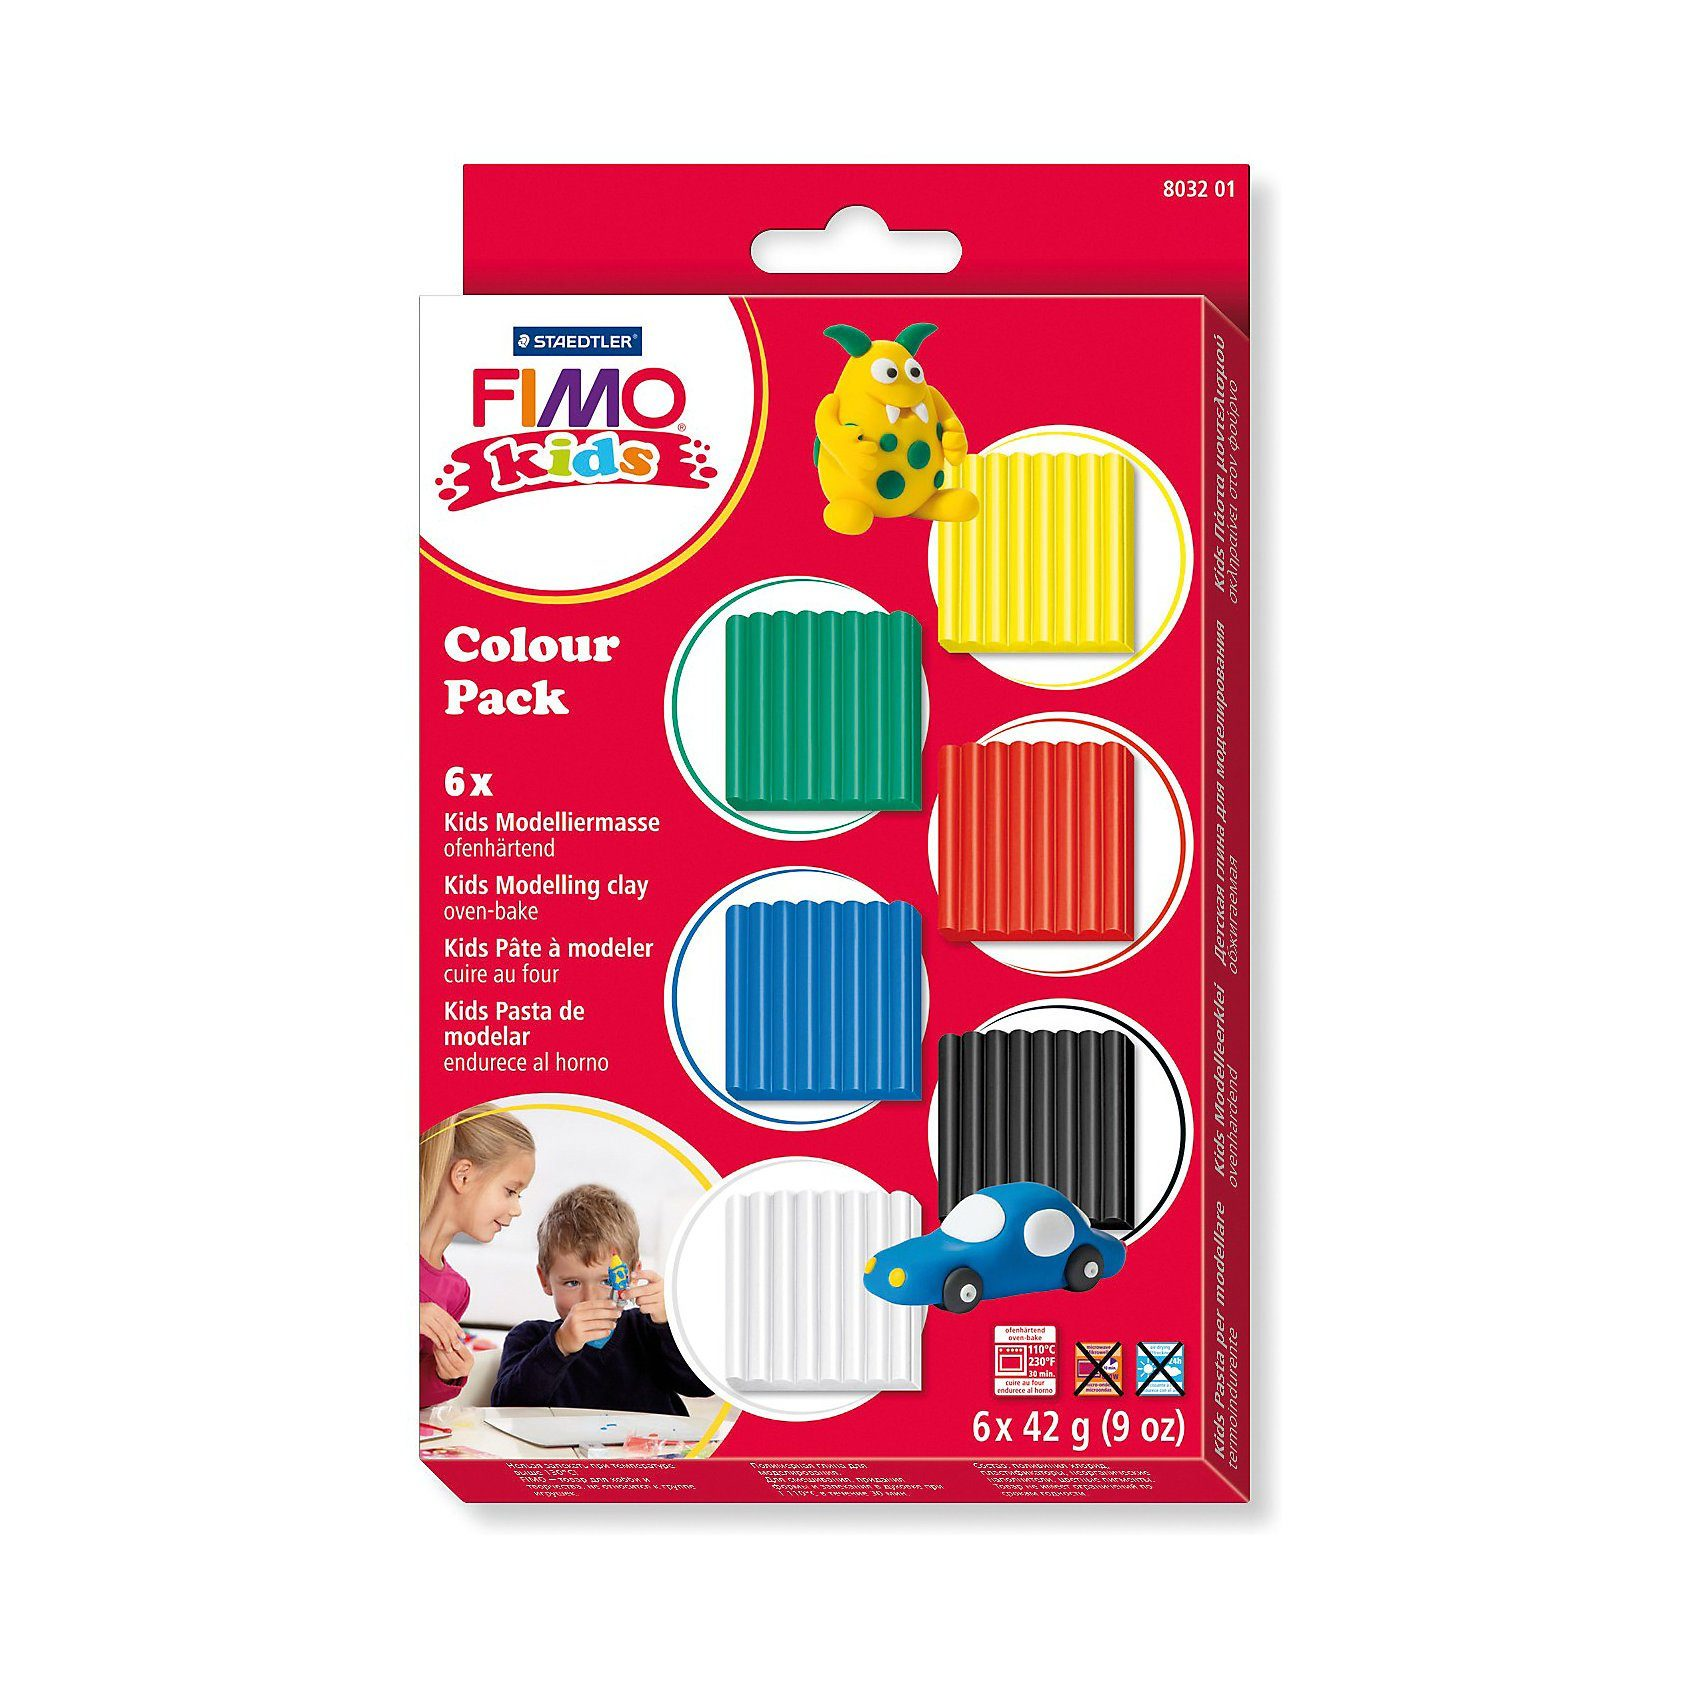 FIMO kids Materialpackung basic, 6 x 42 g